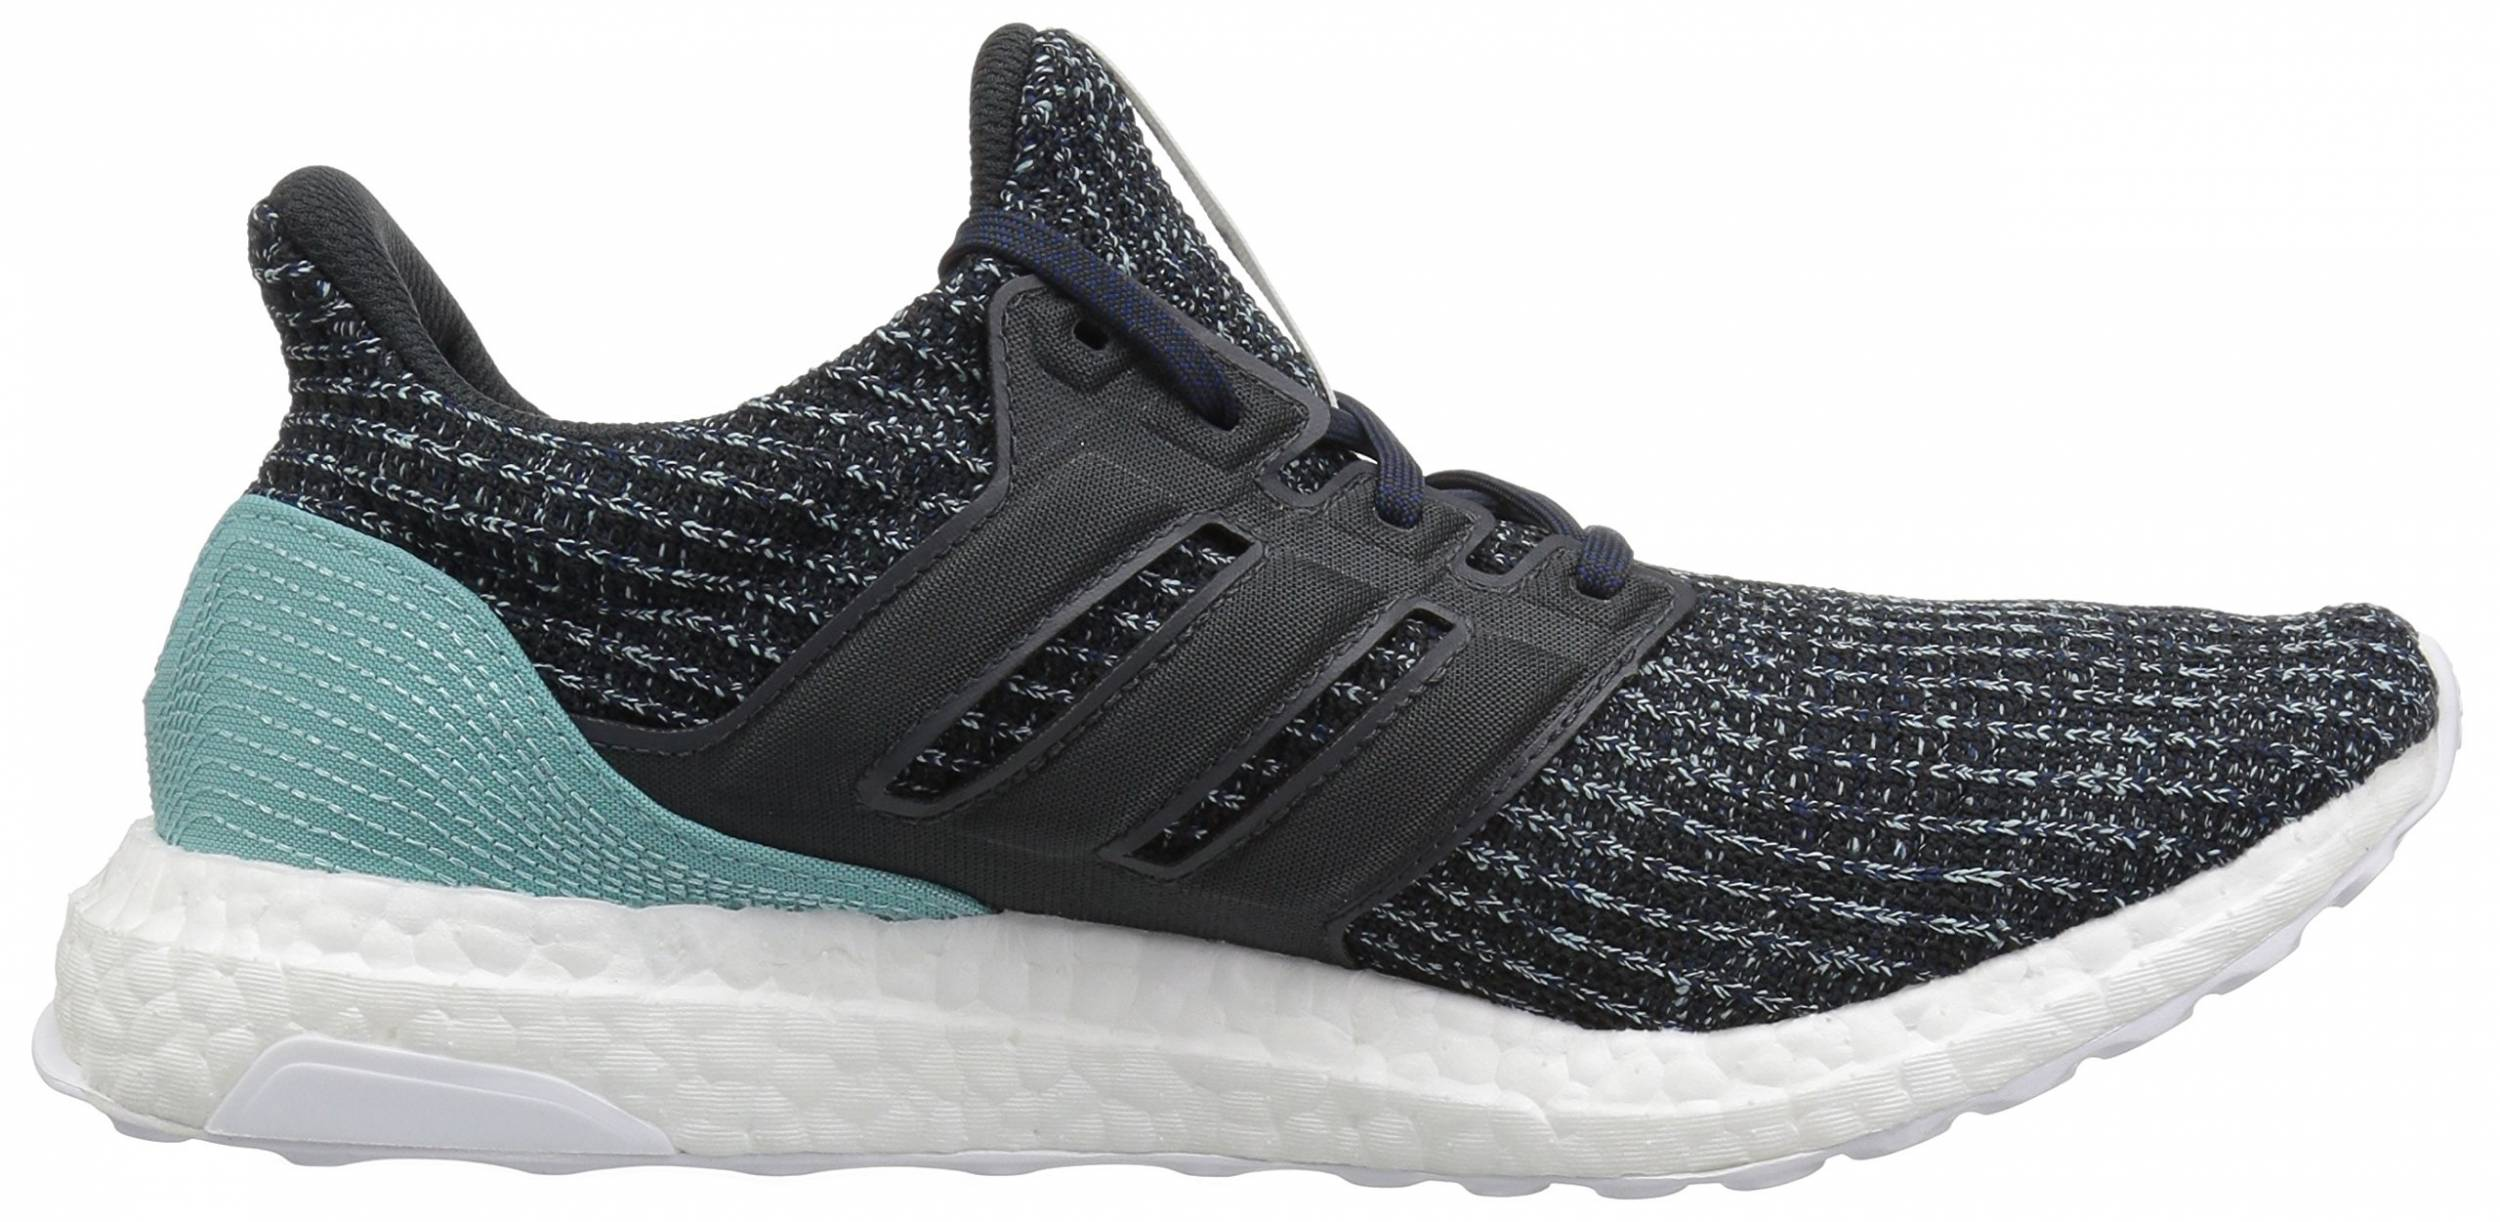 Adidas Ultraboost Parley - Deals ($140), Facts, Reviews (2021 ...